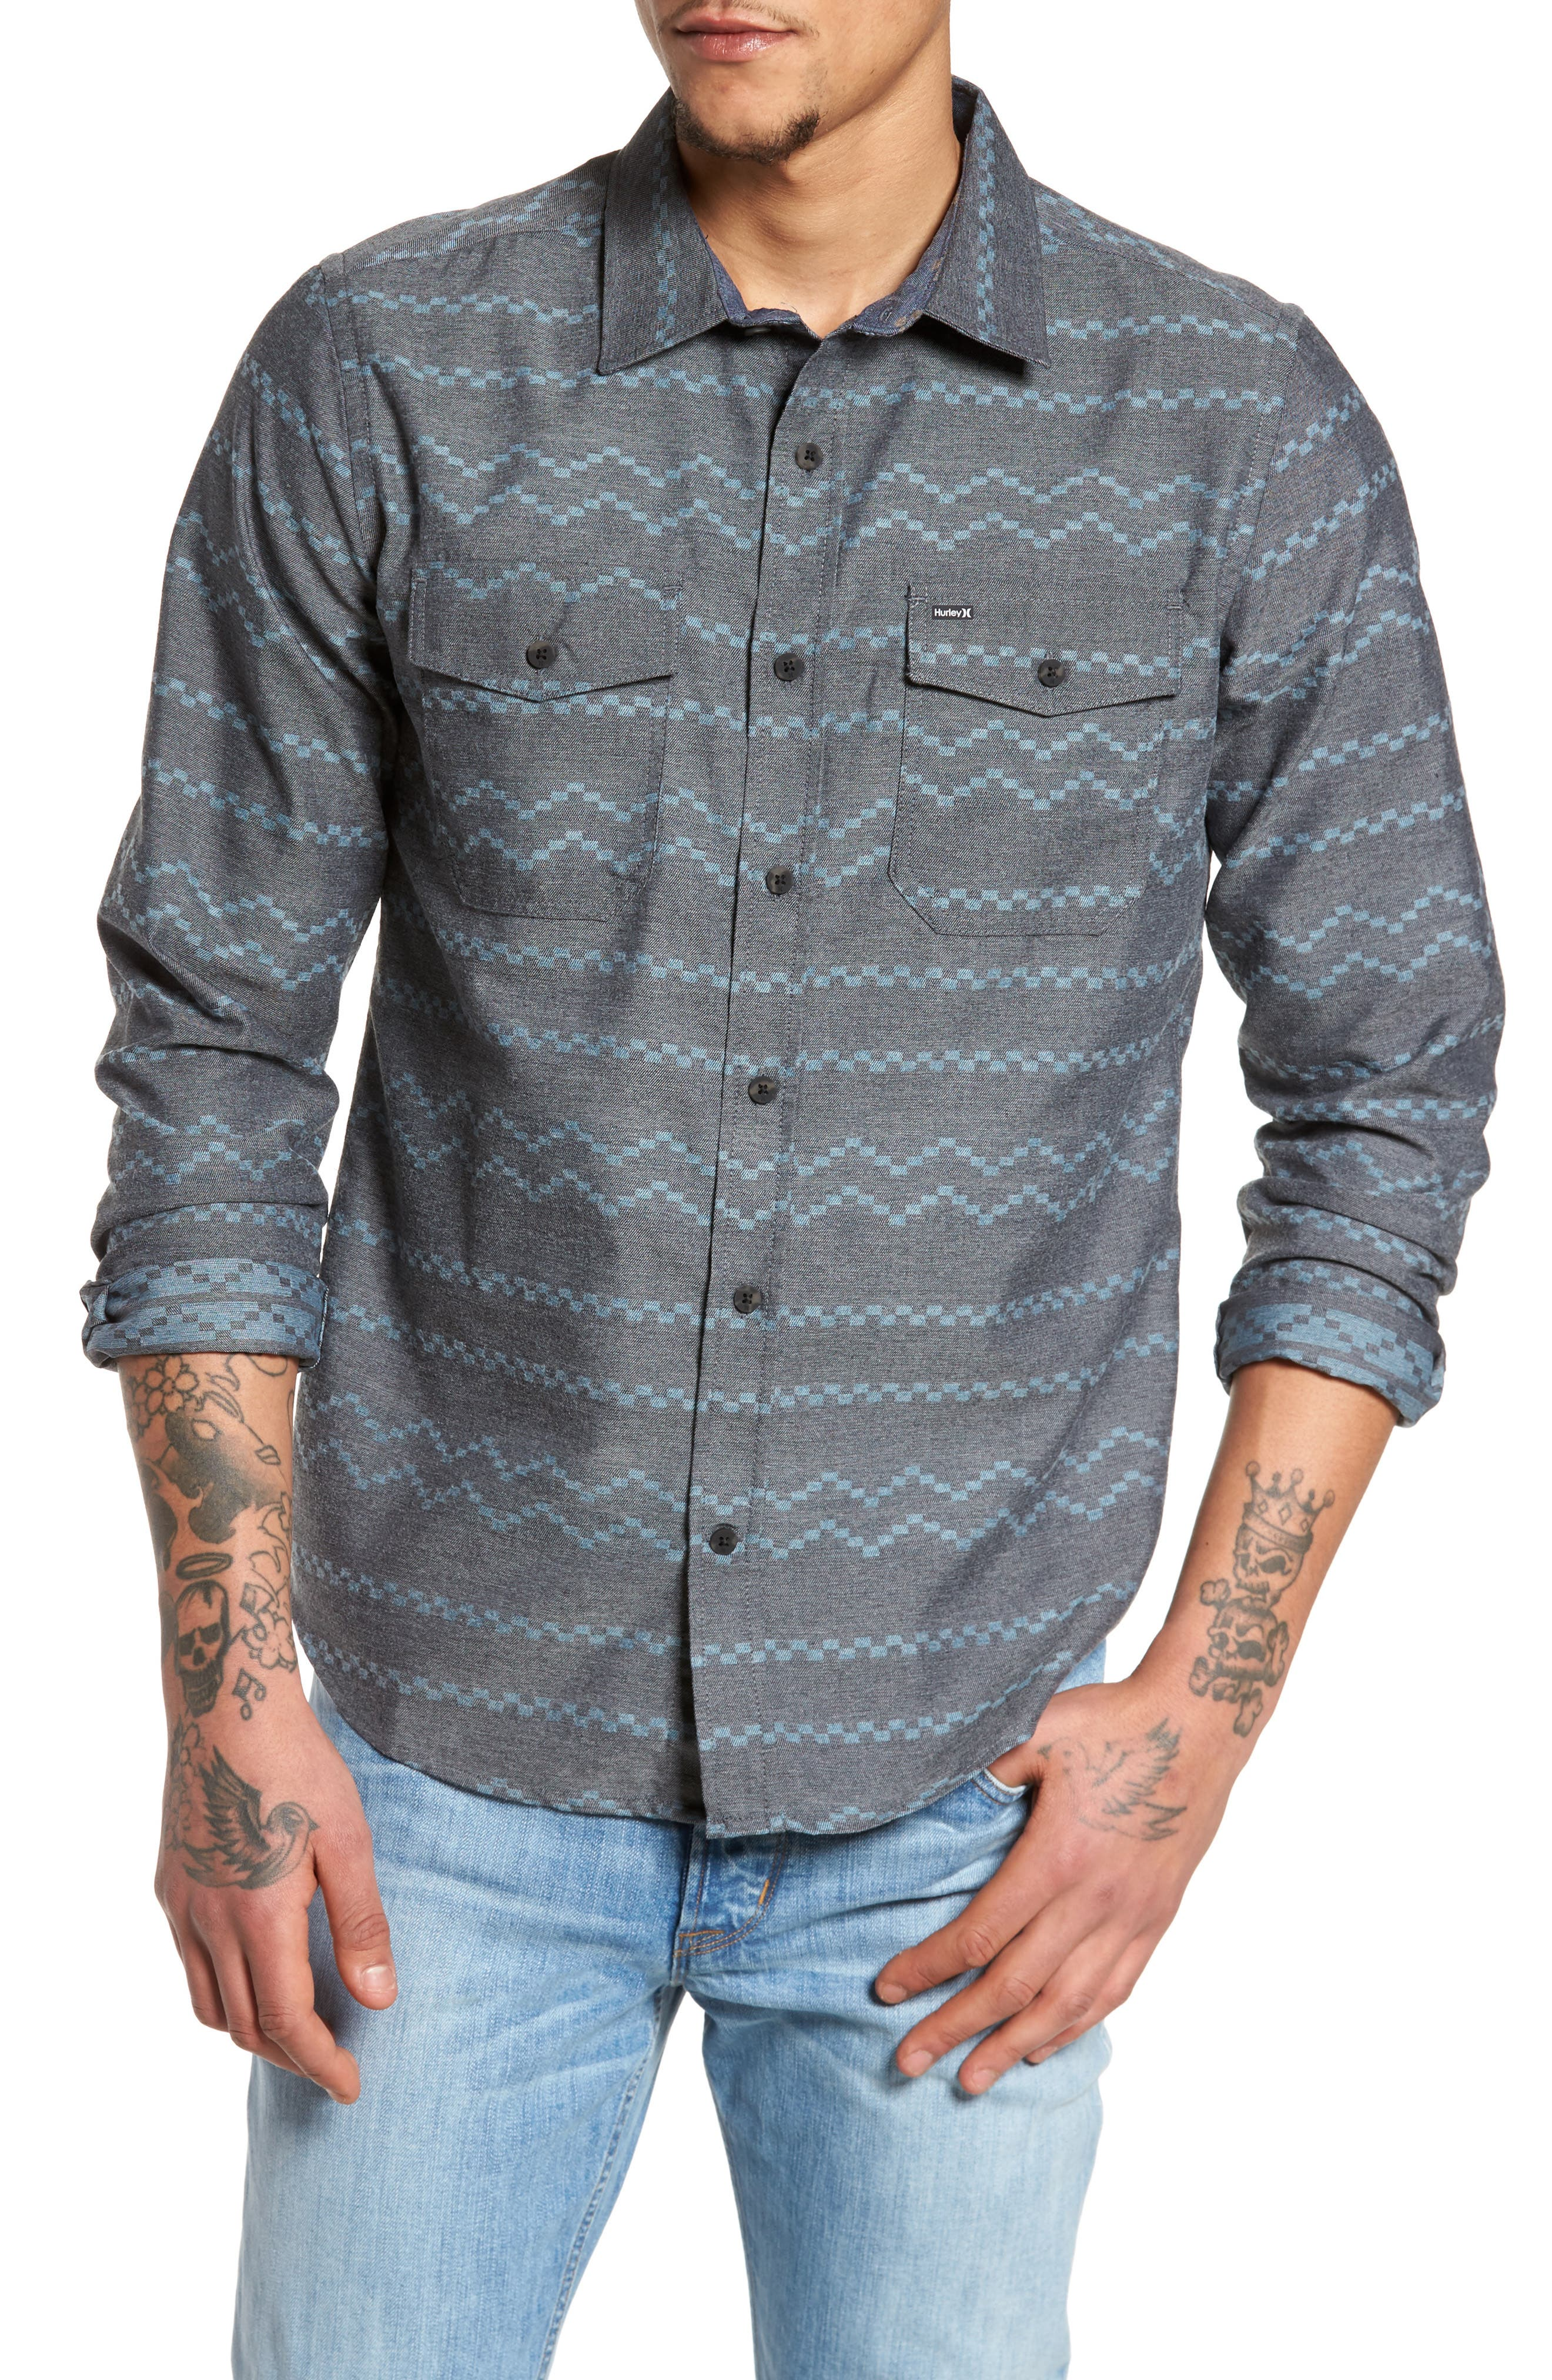 Pismo Dry Flannel Shirt,                         Main,                         color, 010